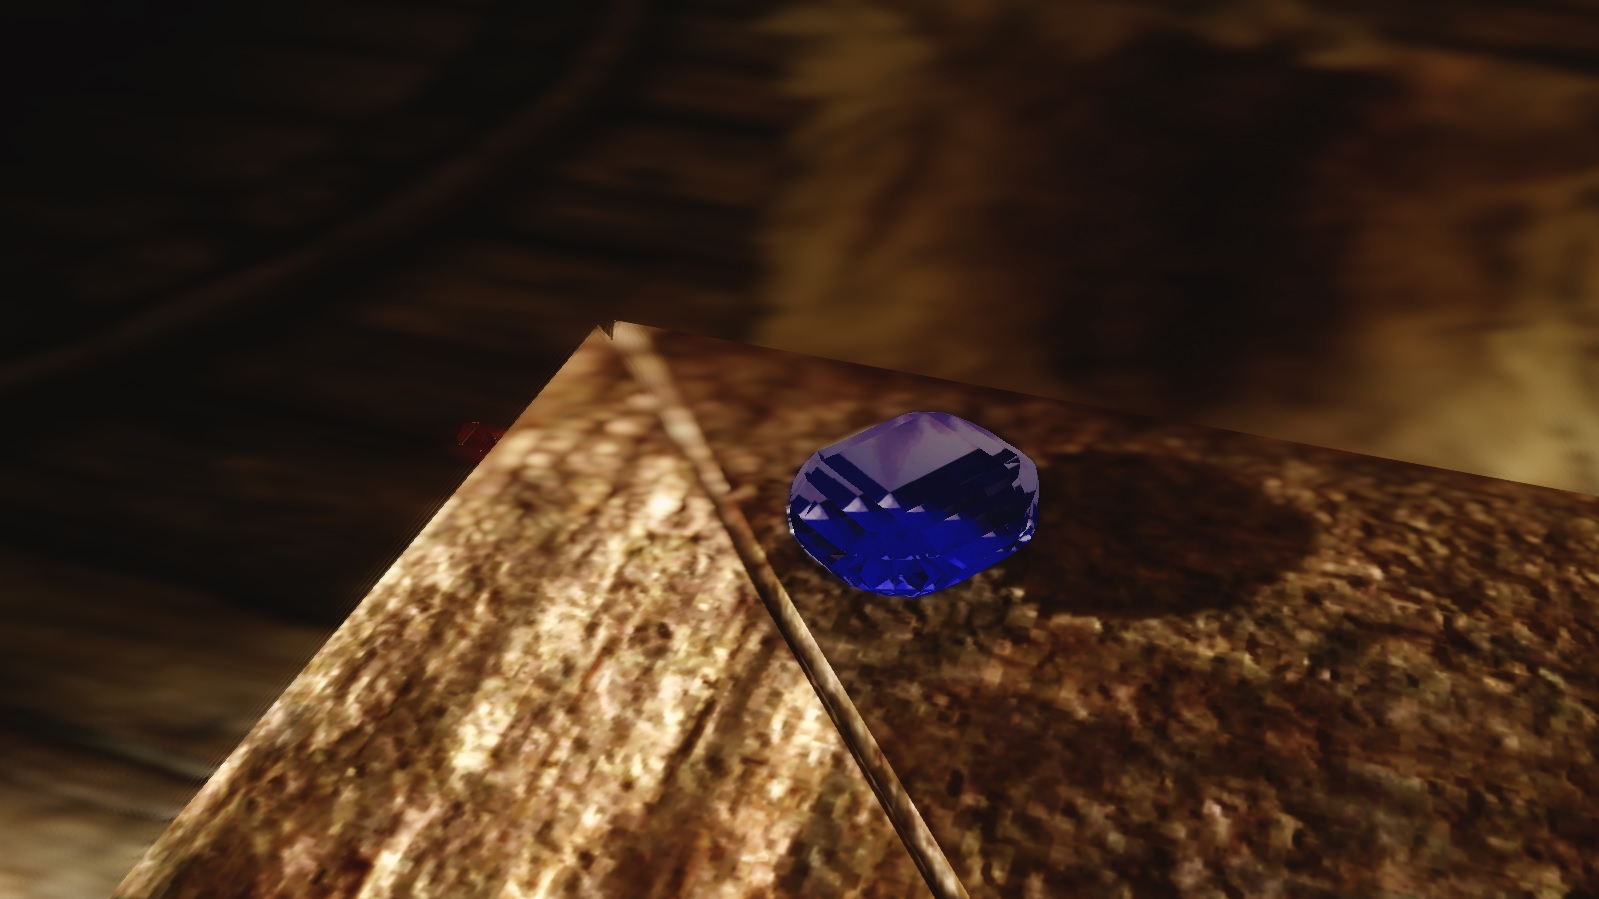 treasure chests flawless opening watch map neverwinter hidden a in sapphire bottle